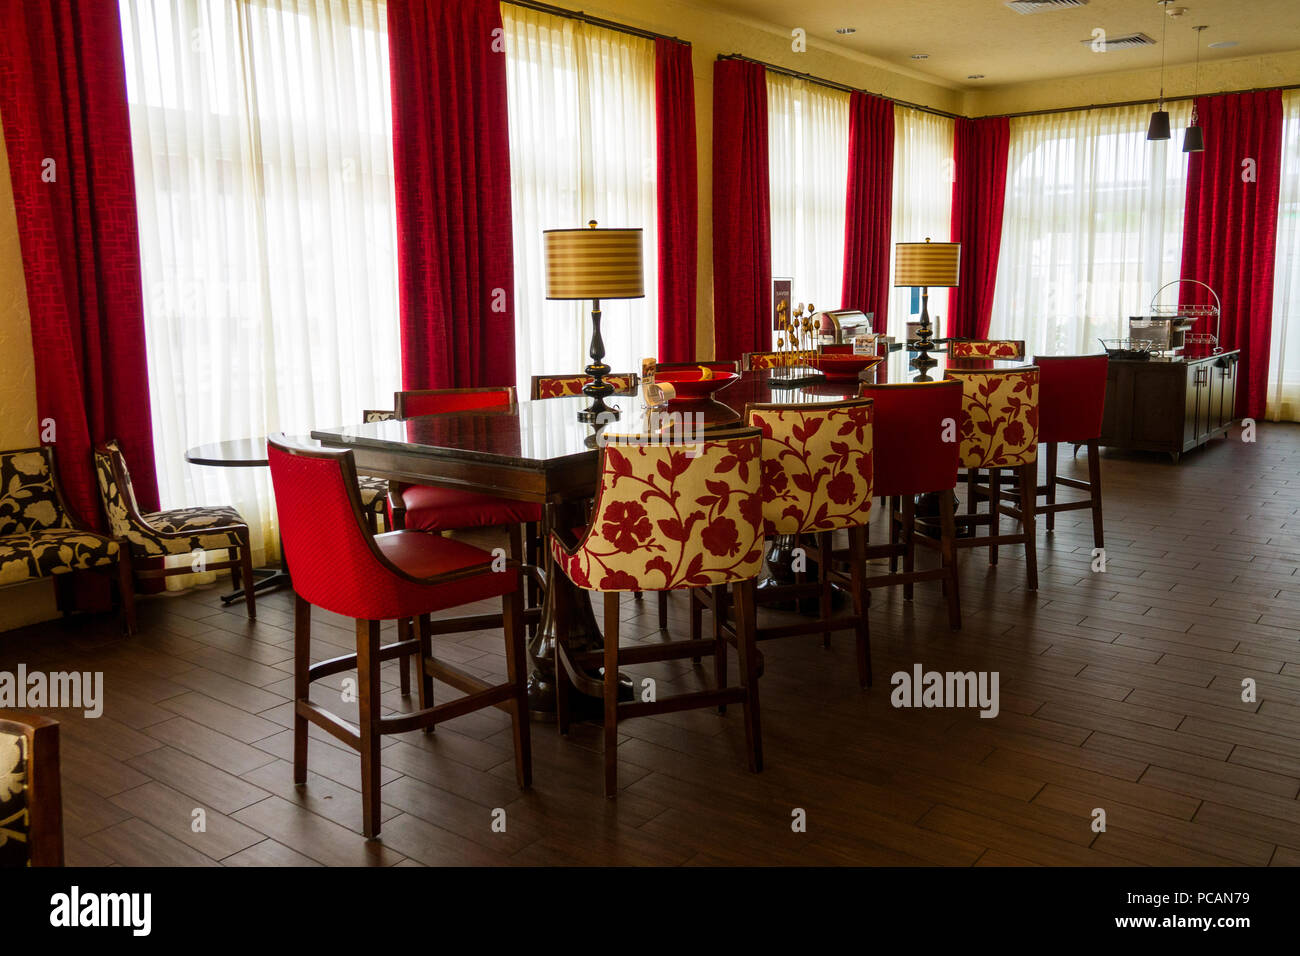 Formal dining room with red and white curtains and decor and seating for a large crowd of 12 persons Stock Photo